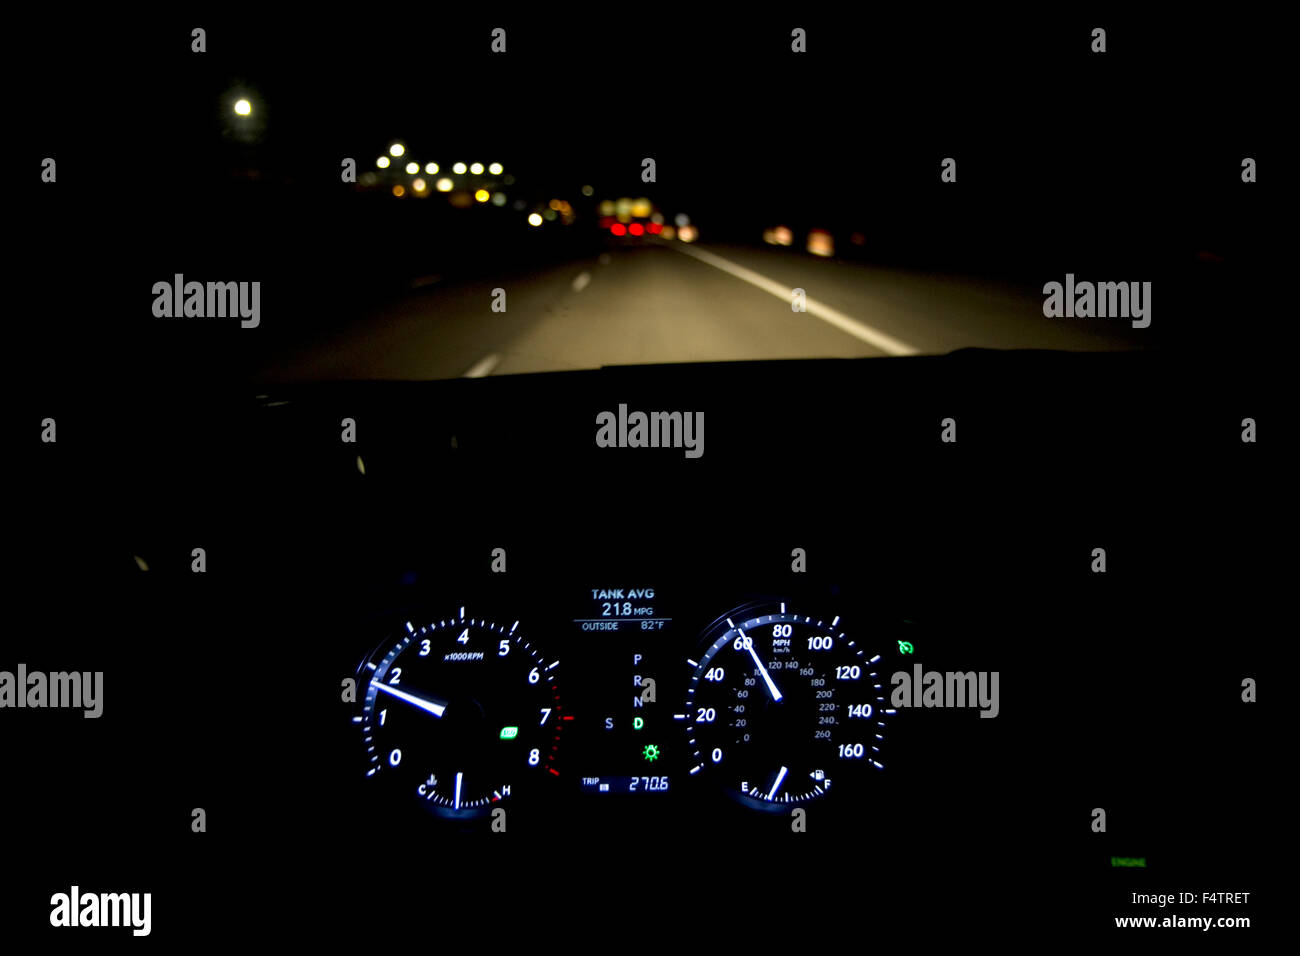 Driver's eye view of dashboard and highway at night in Ada County, Idaho, USA. - Stock Image